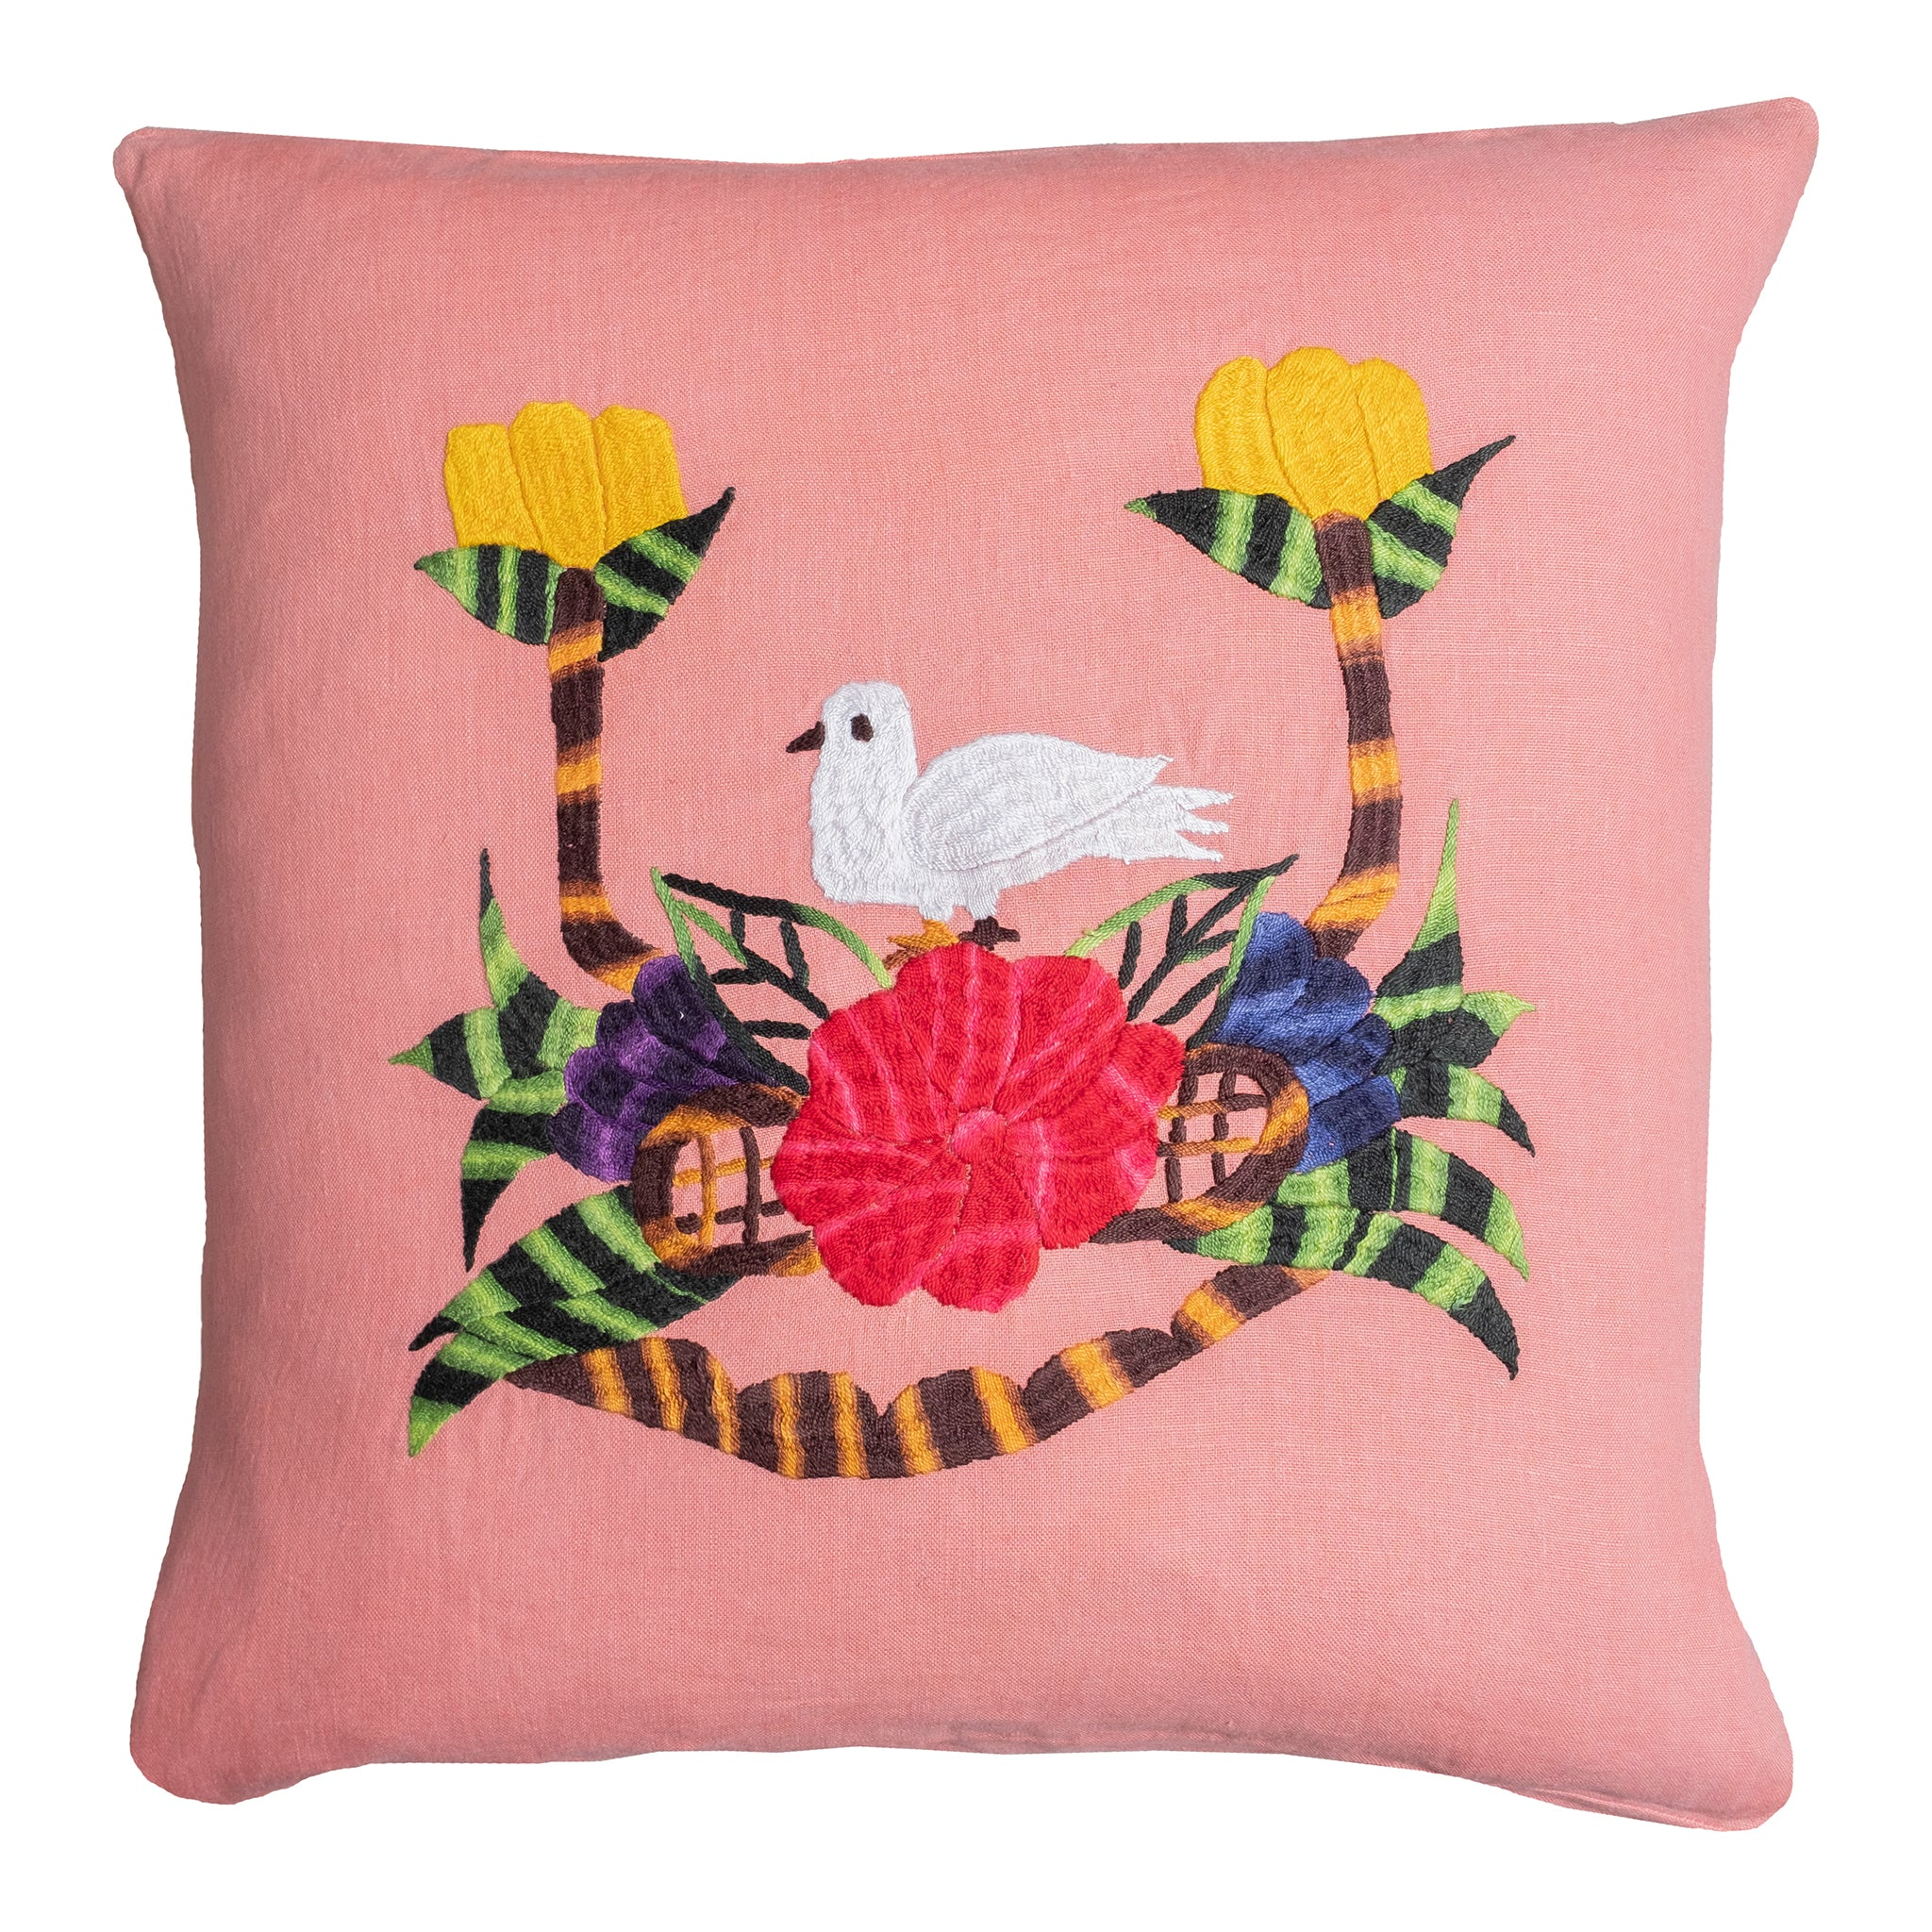 Dove pillow on pink linen